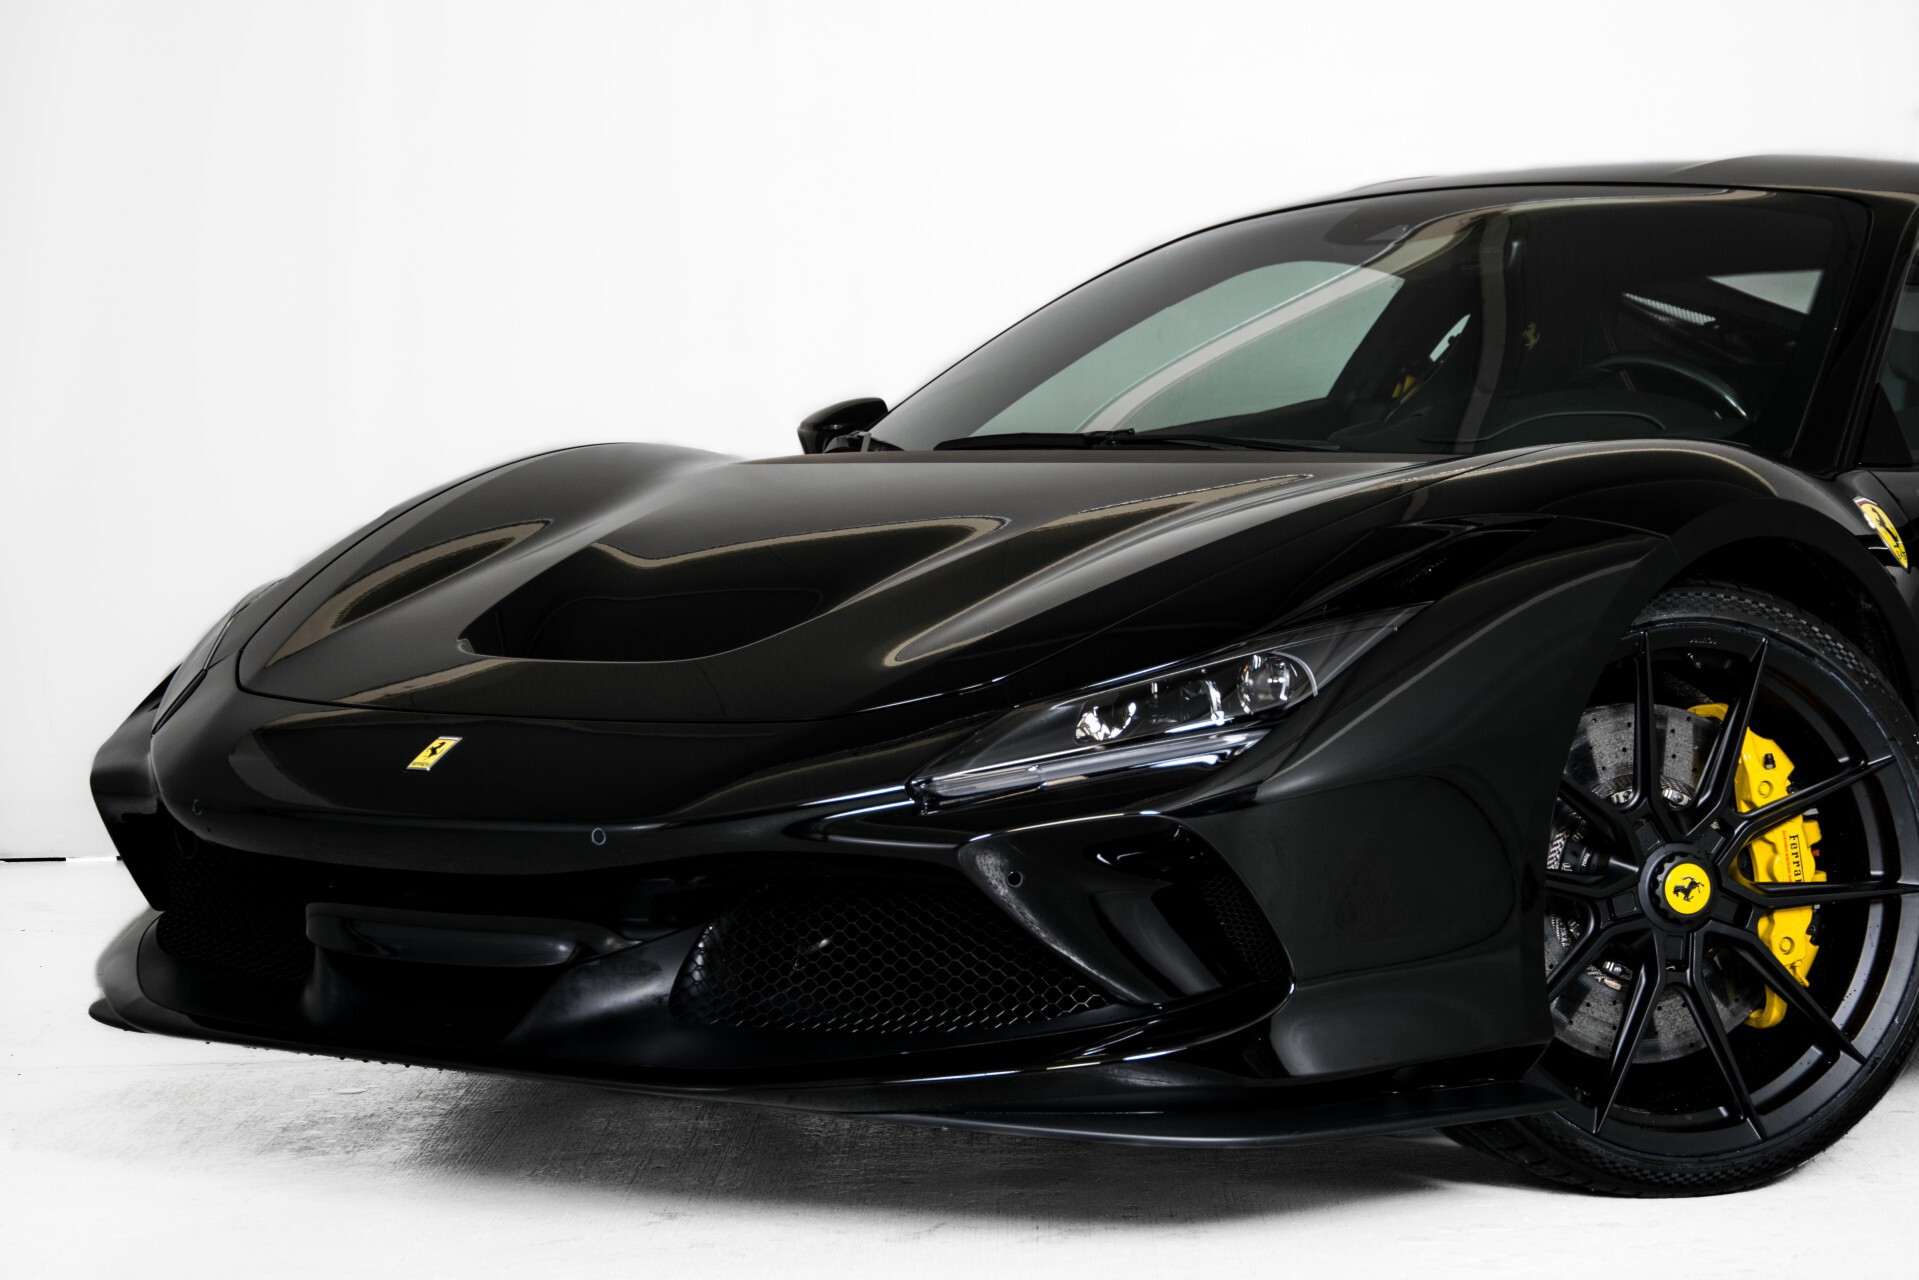 Ferrari F8 Tributo 3.9 V8 HELE Novitech Full Carbon/Lift/Racing Seats/Passenger Display/Hifi Foto 56